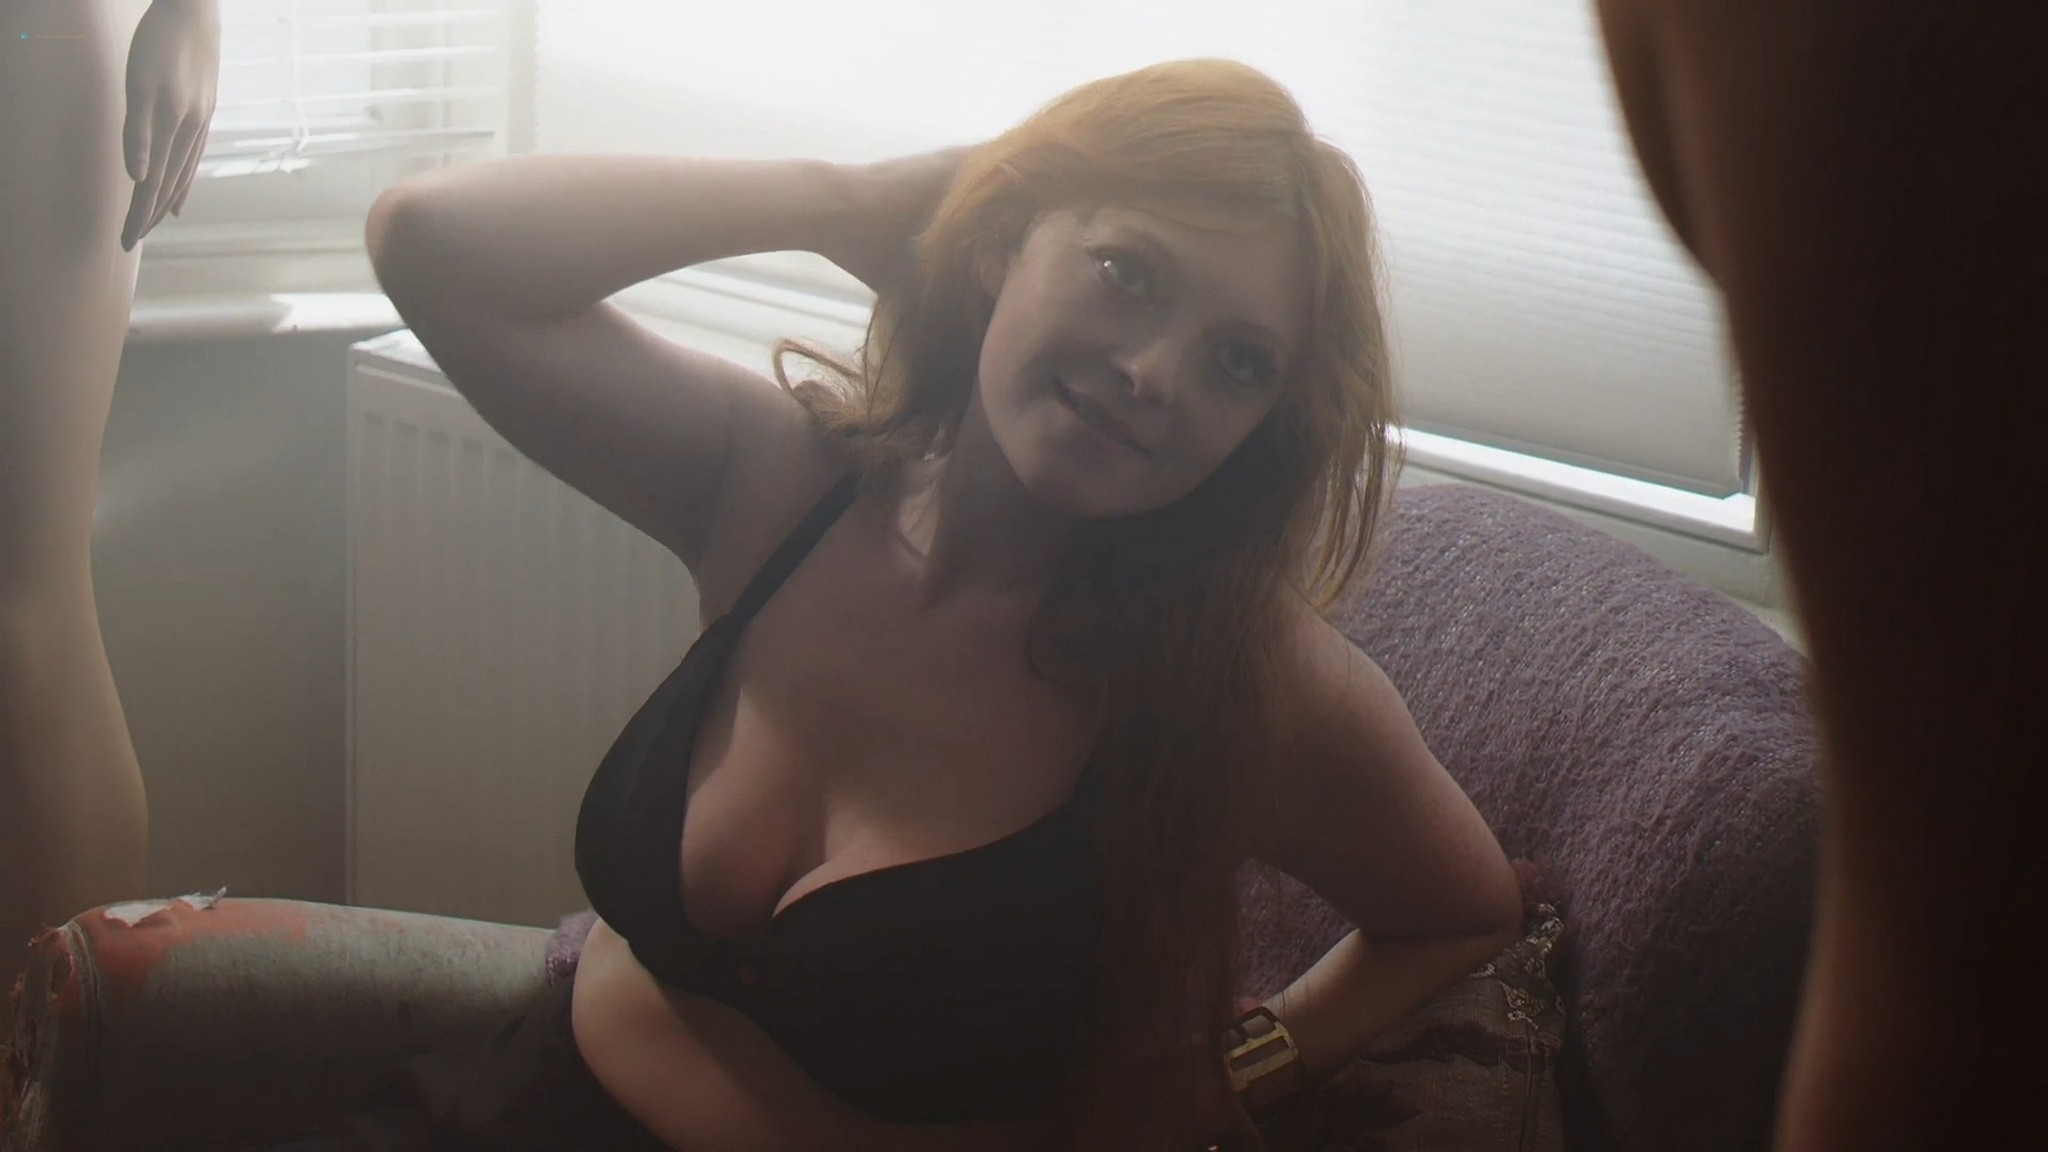 Kate Palmerston nude and sex Claudine Helen nude threesome Assistant 2021 1080p Web 3